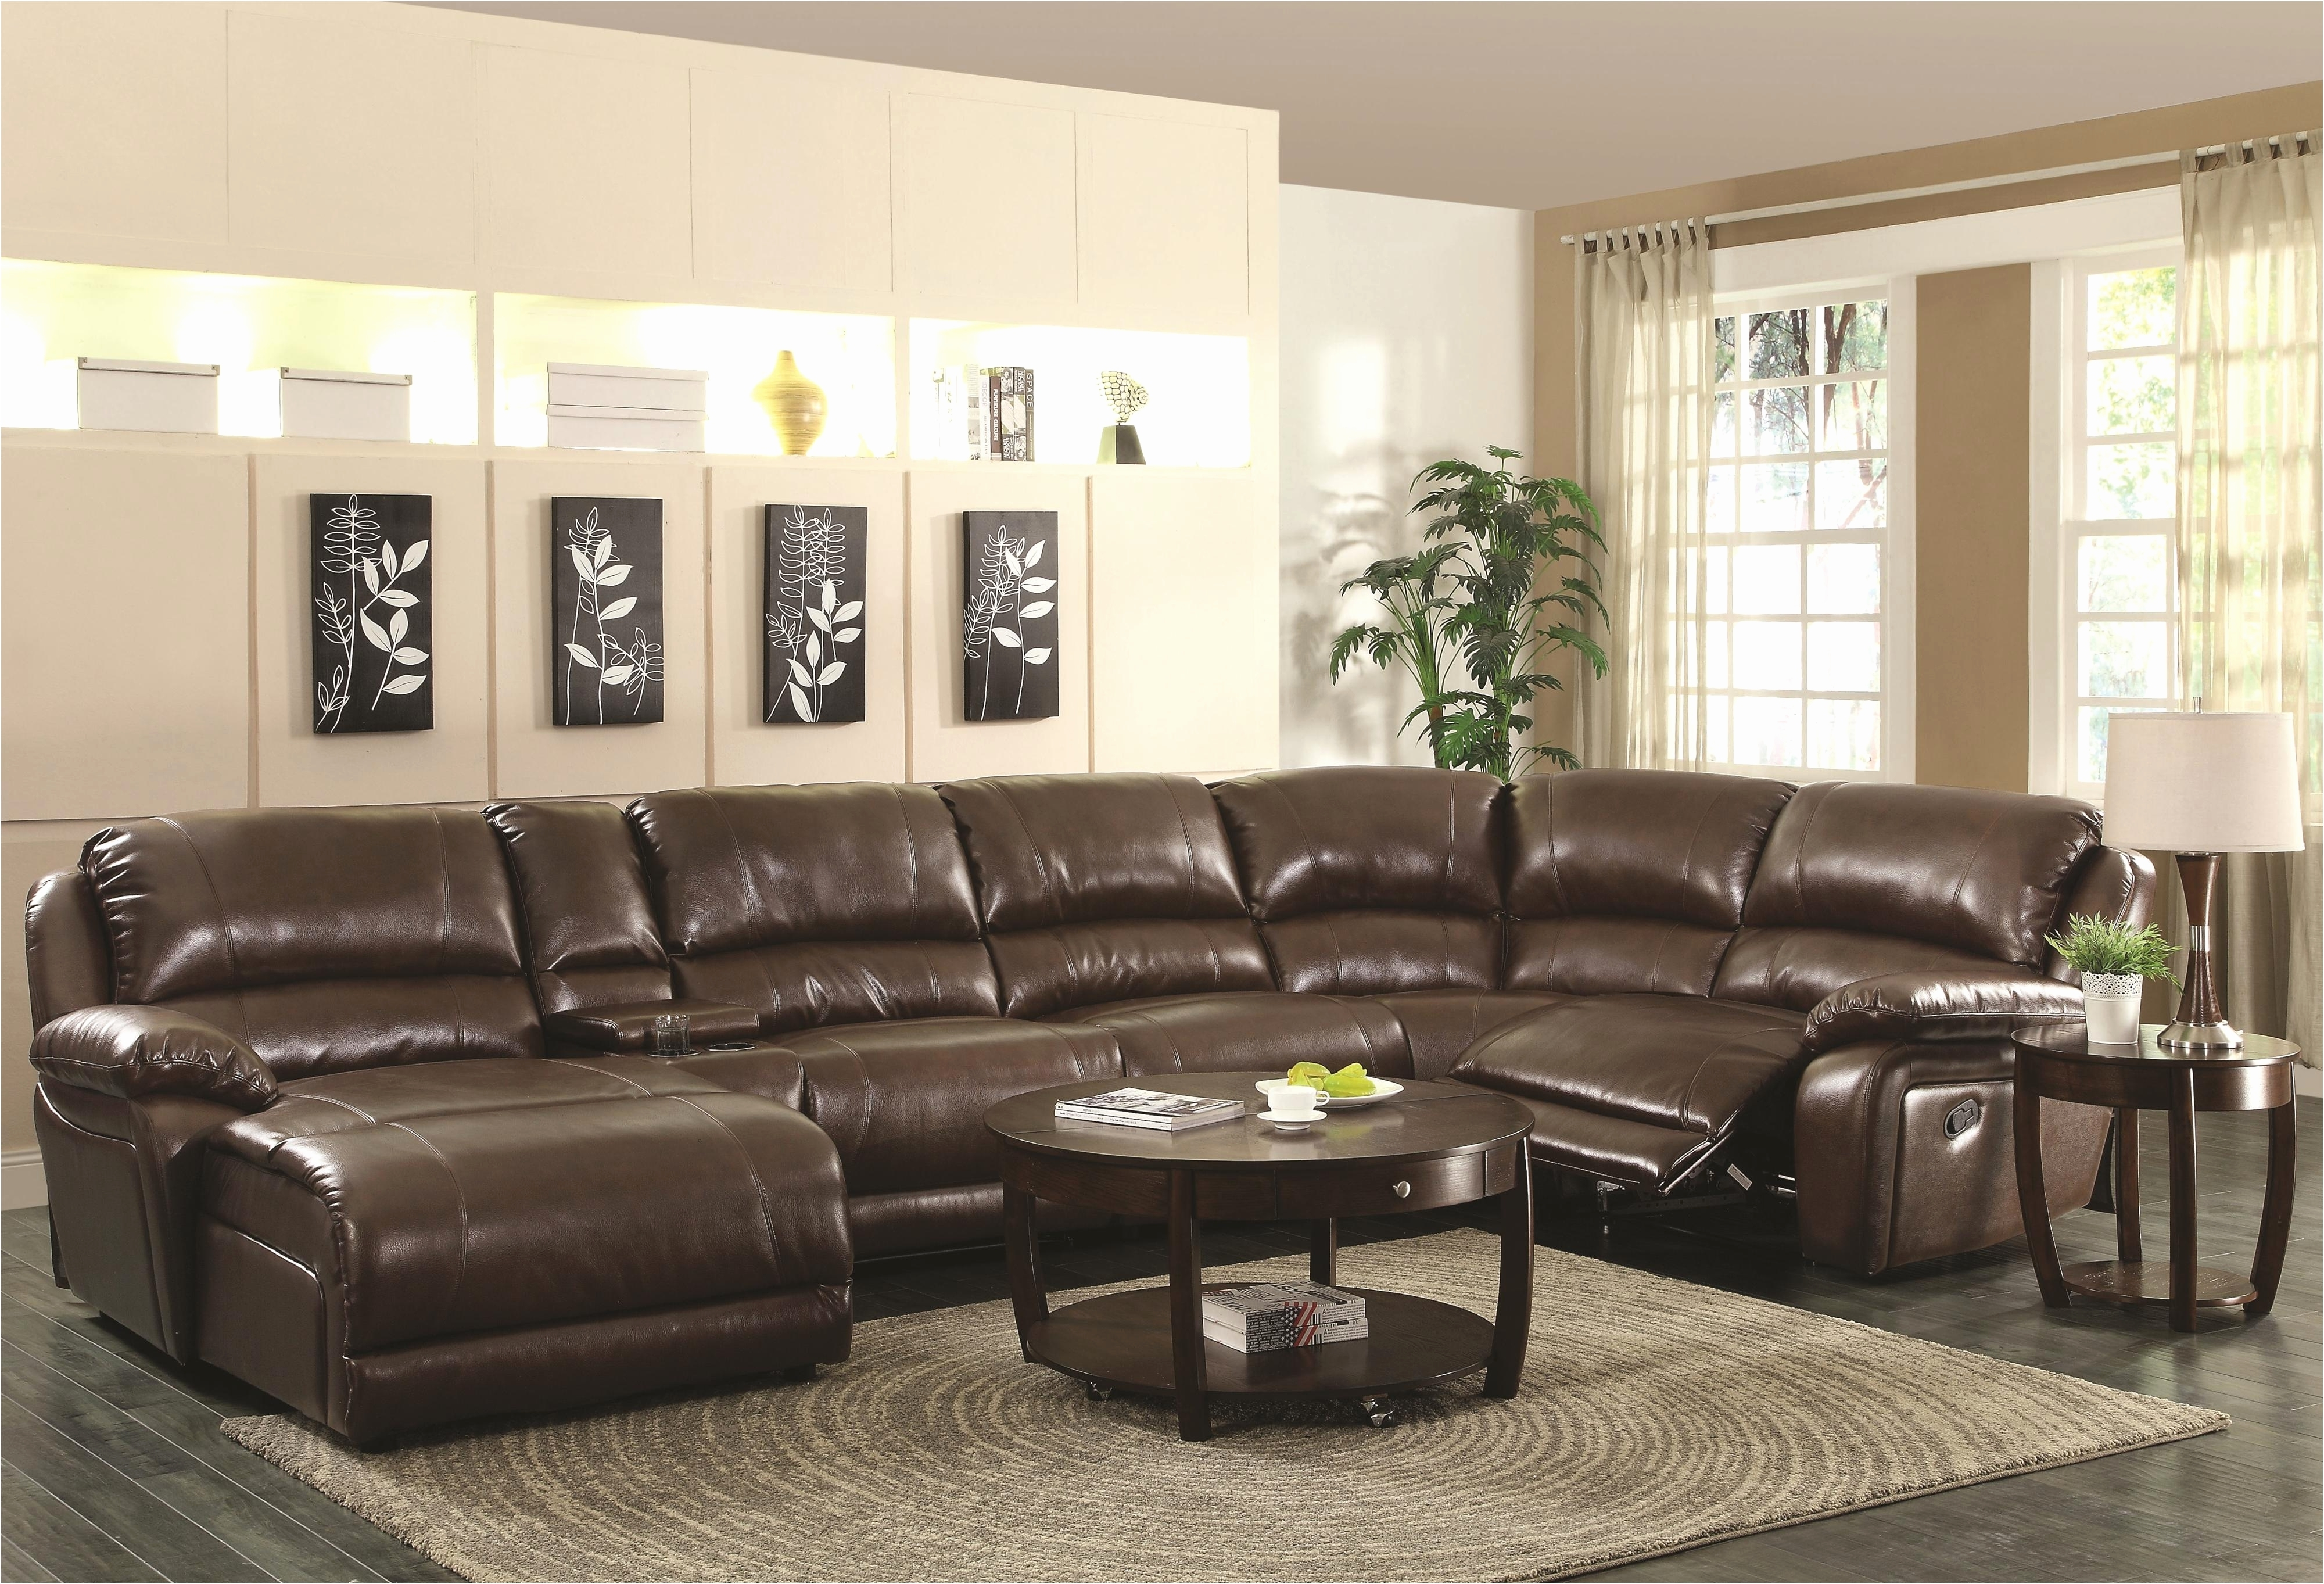 Best And Newest Elegant Sectional Sofas With Regard To Sectional Sofas Leather Elegant Delighful Couches With Chaise New (View 5 of 15)